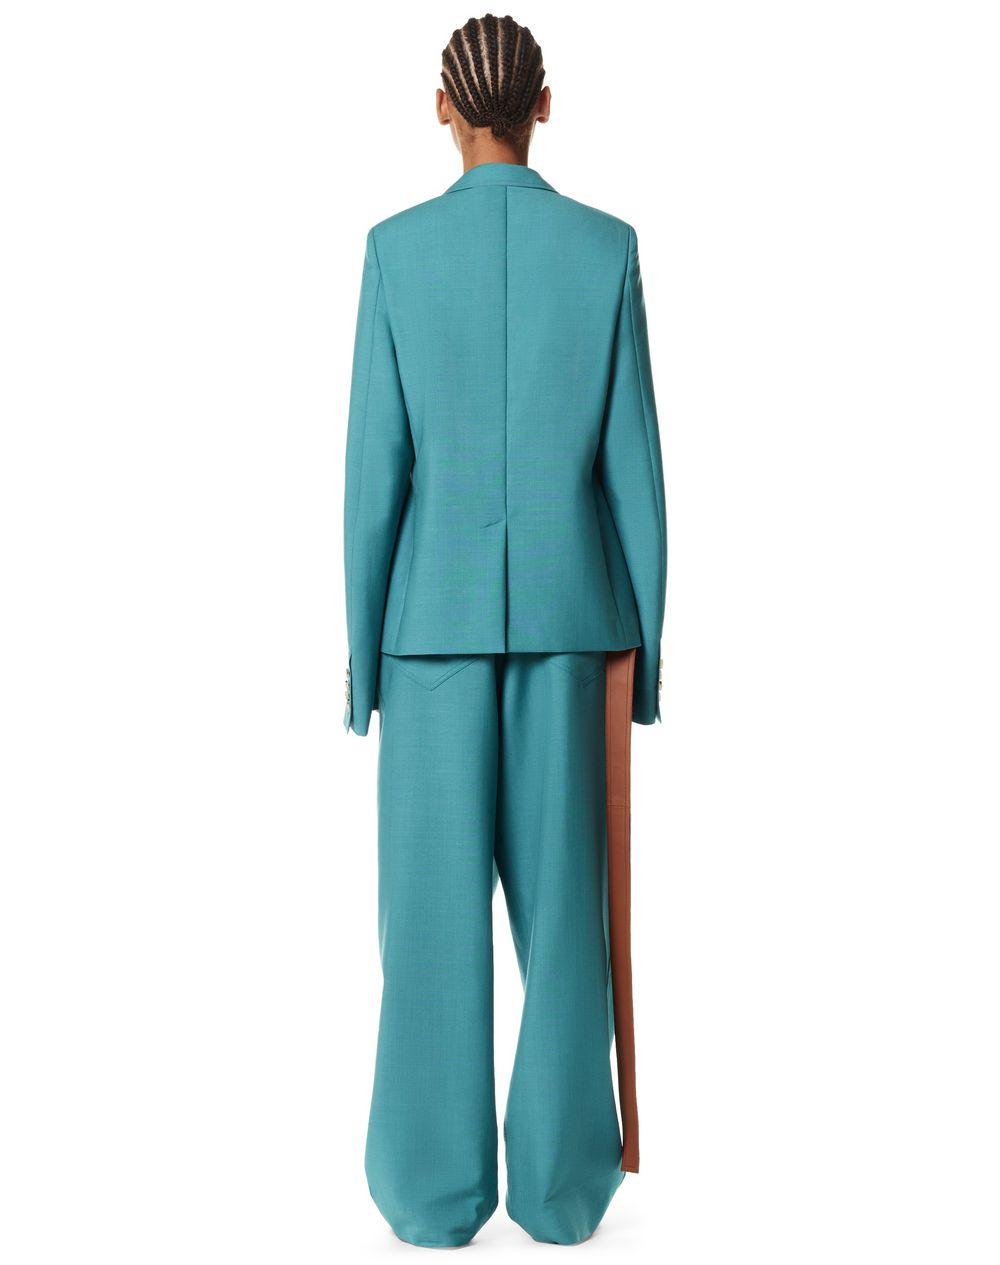 OVERSIZE SLEEVE JACKET IN MOHAIR AND SILK - Lanvin